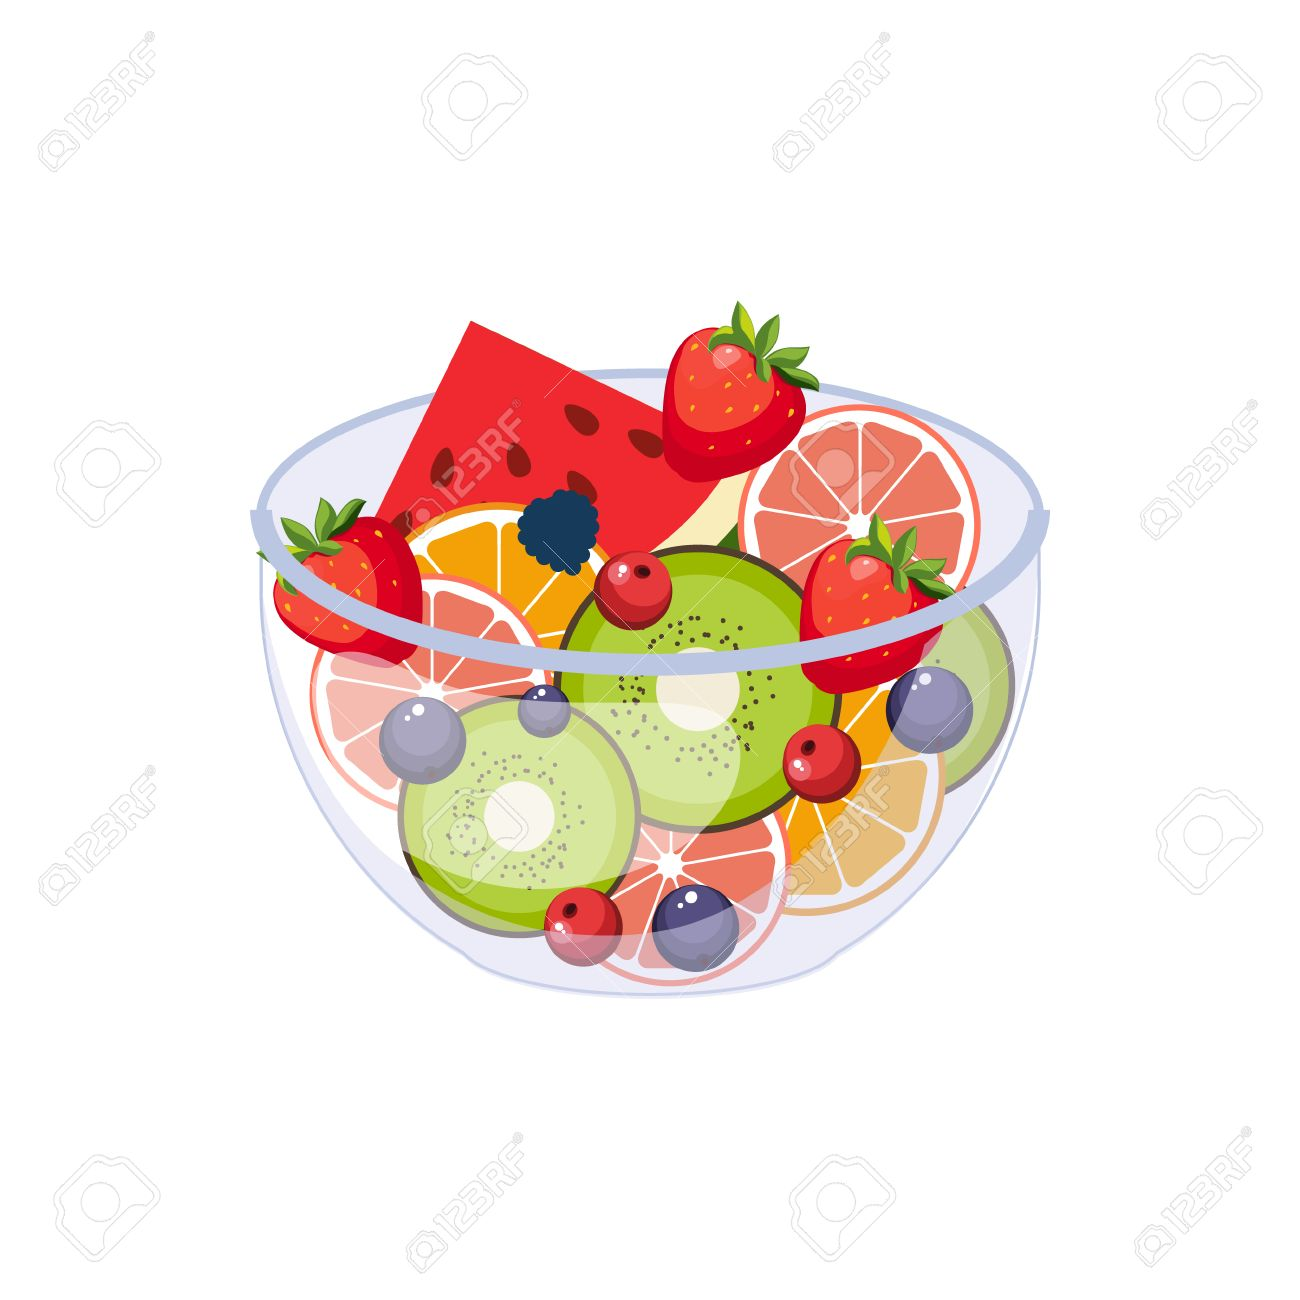 Fruit Salad Breakfast Food Element Isolated Icon. Simple Realistic Flat Vector Colorful Drawing On White Background. - 64035371